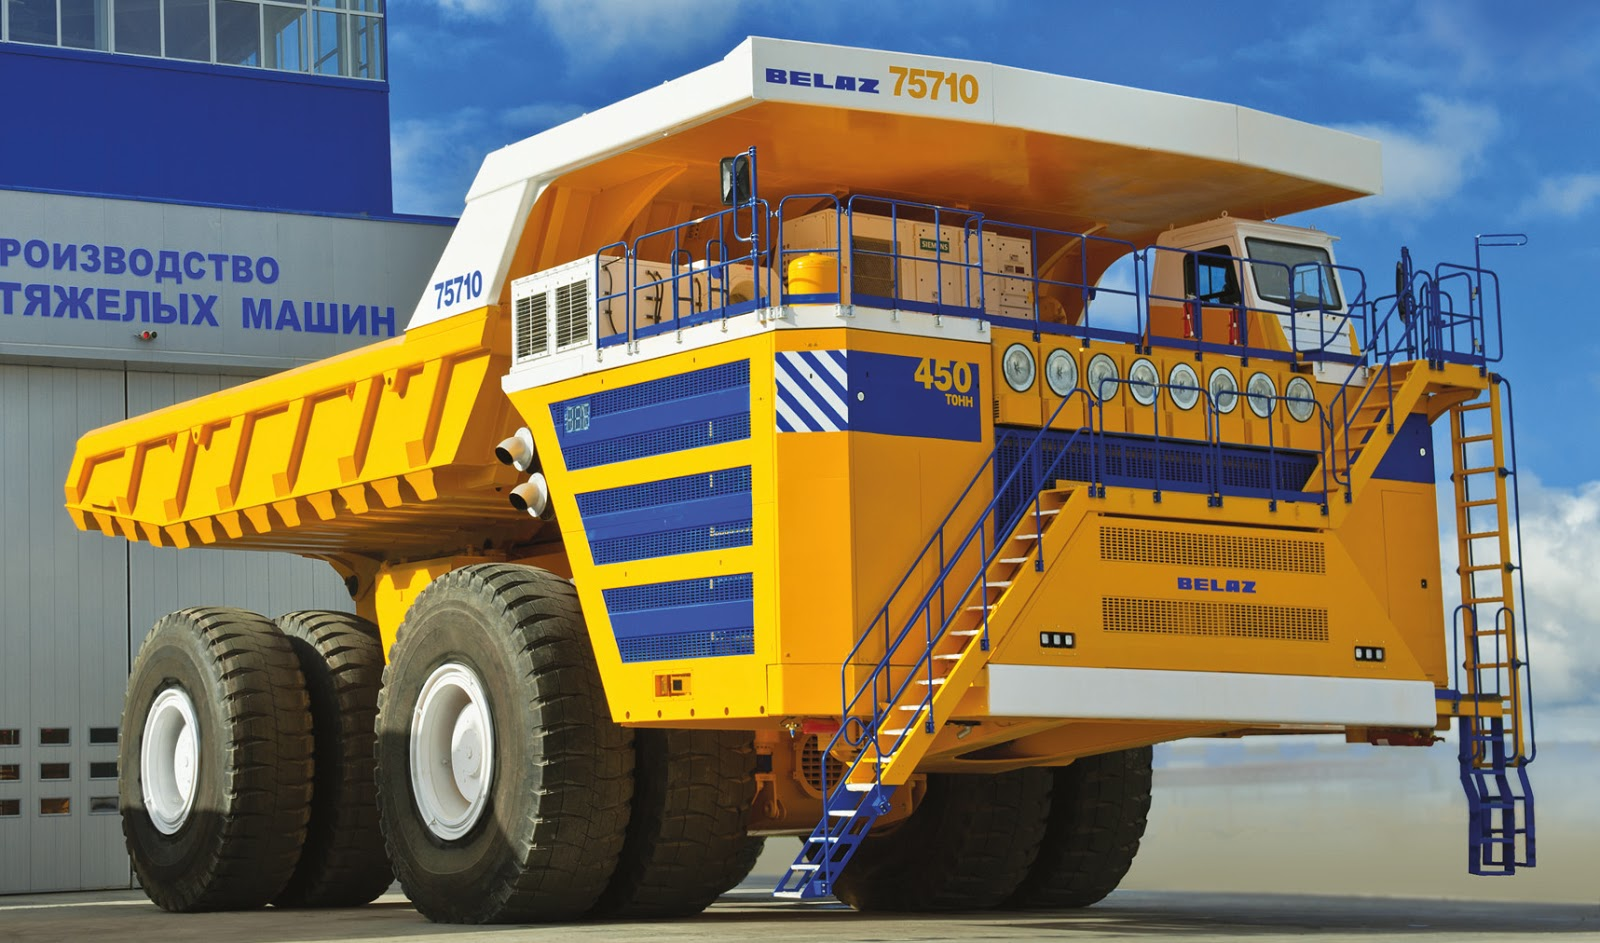 Belaz 75710 with payload of 450 mt is the biggest dump truck in the world it holds two guinness world records for the largest truck body and the largest